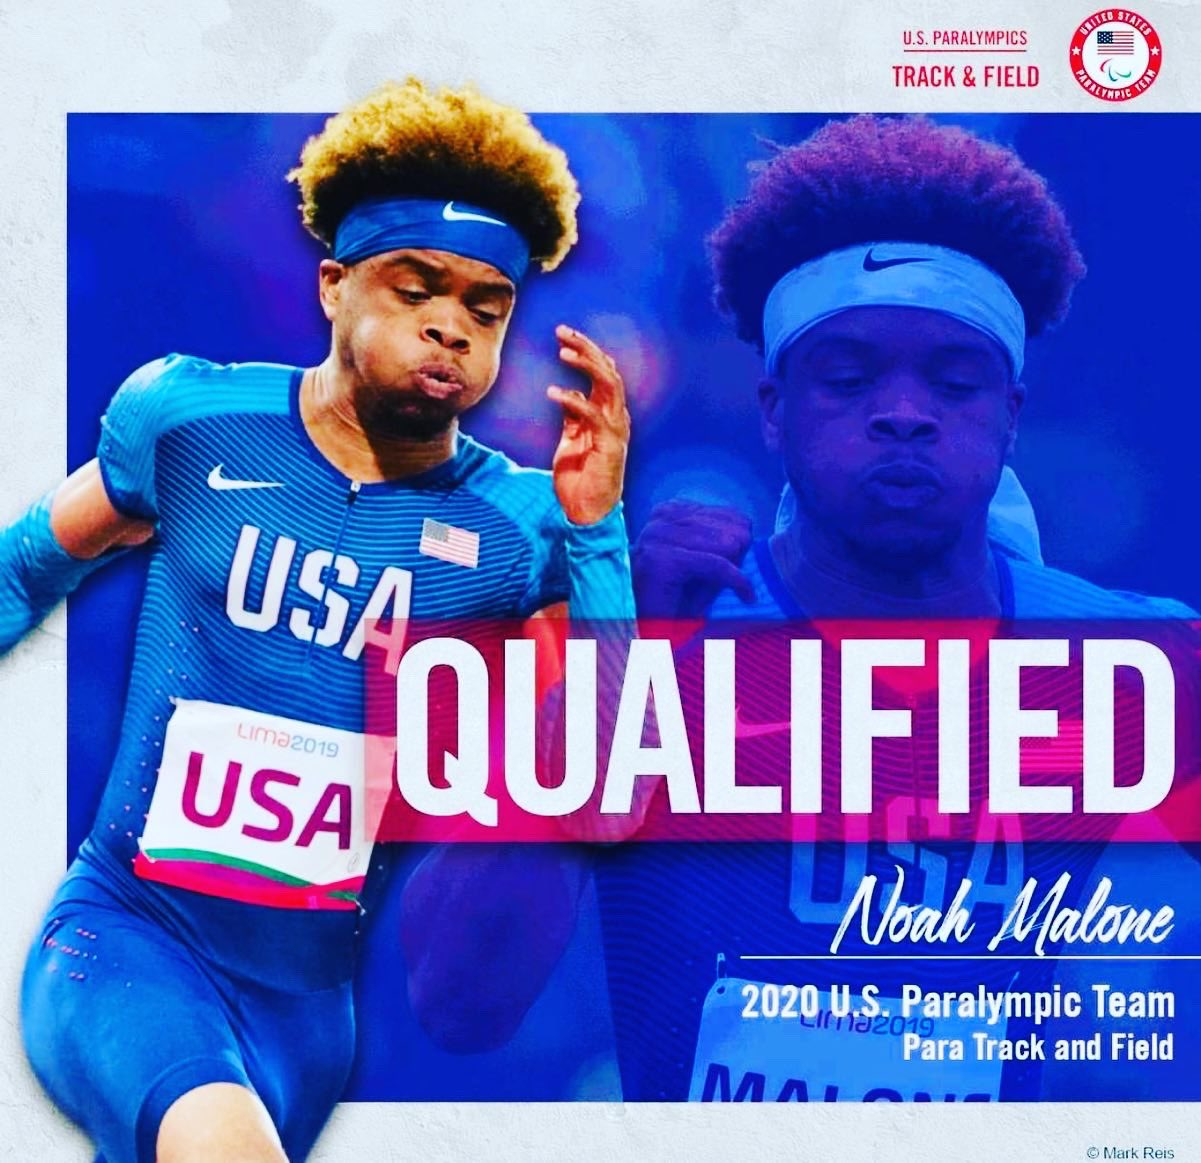 """a track and field runner in front of a graphic that says, """"qualified noah malone 2020 u.s. paralympic team para track and field"""""""